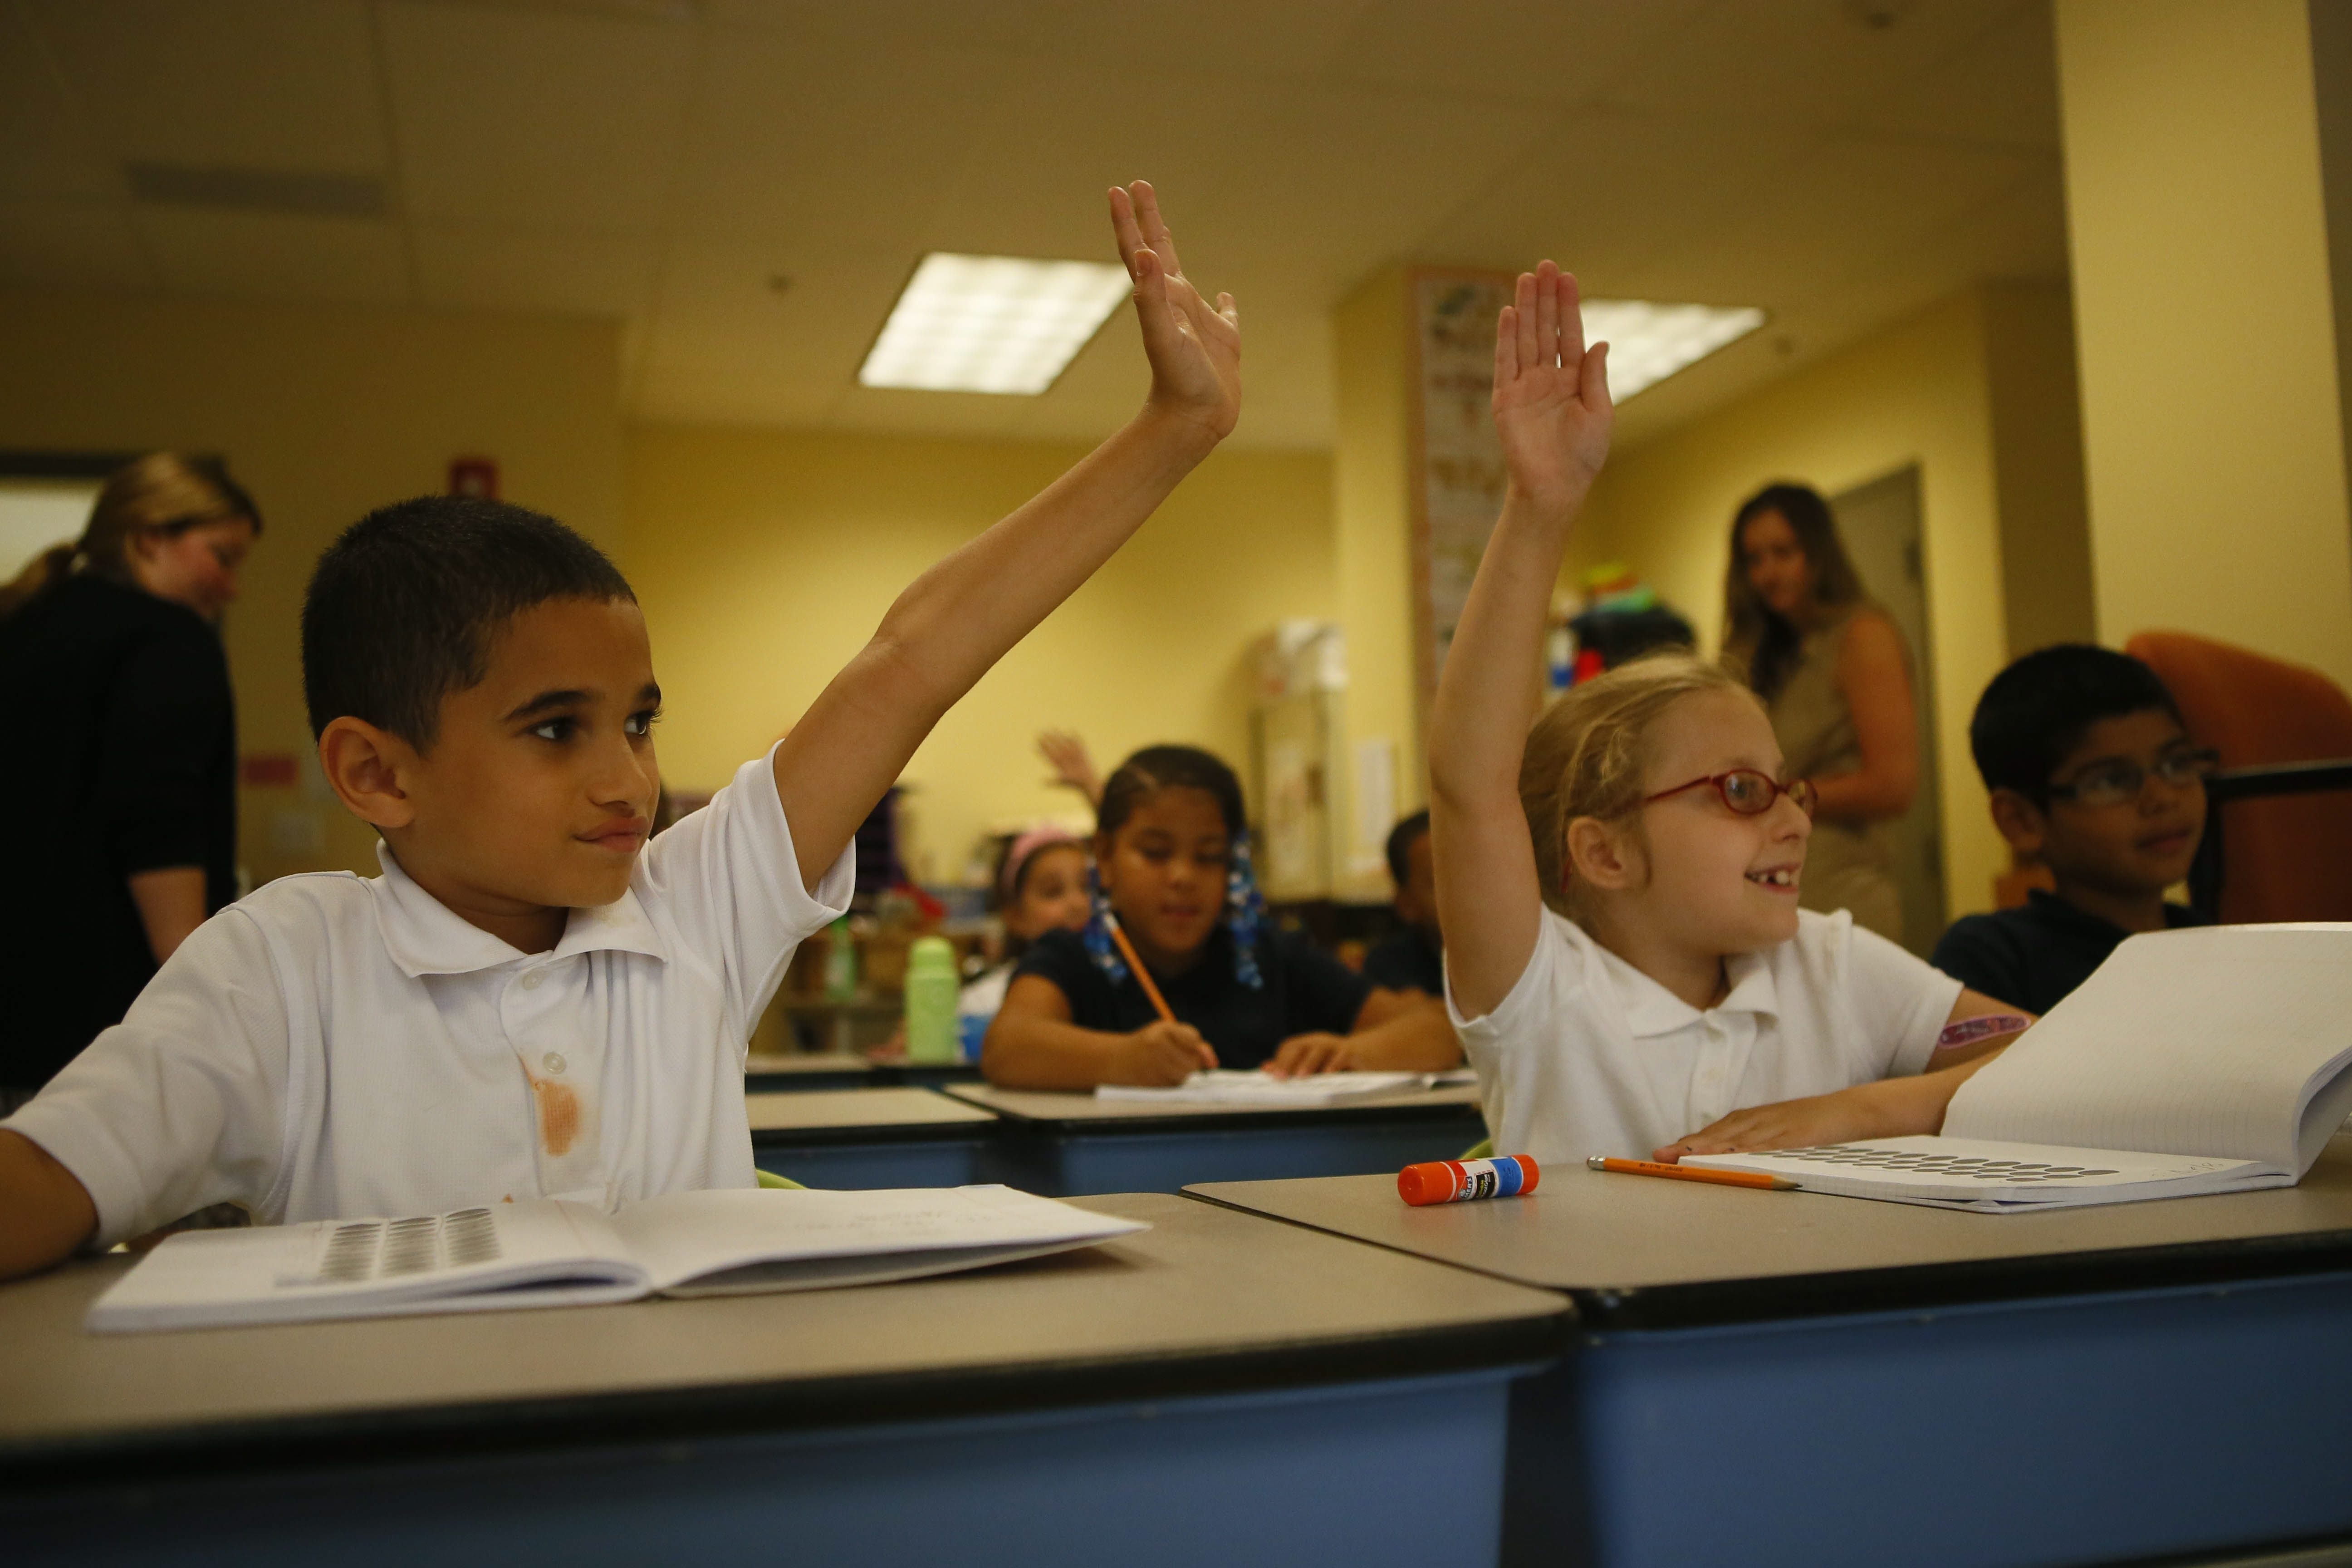 West Buffalo Charter School, which opened last year, structured much of its curriculum around Common Core standards. Here, third-graders Hector Perez Tirado and Danielle Dickman participate in a math class.